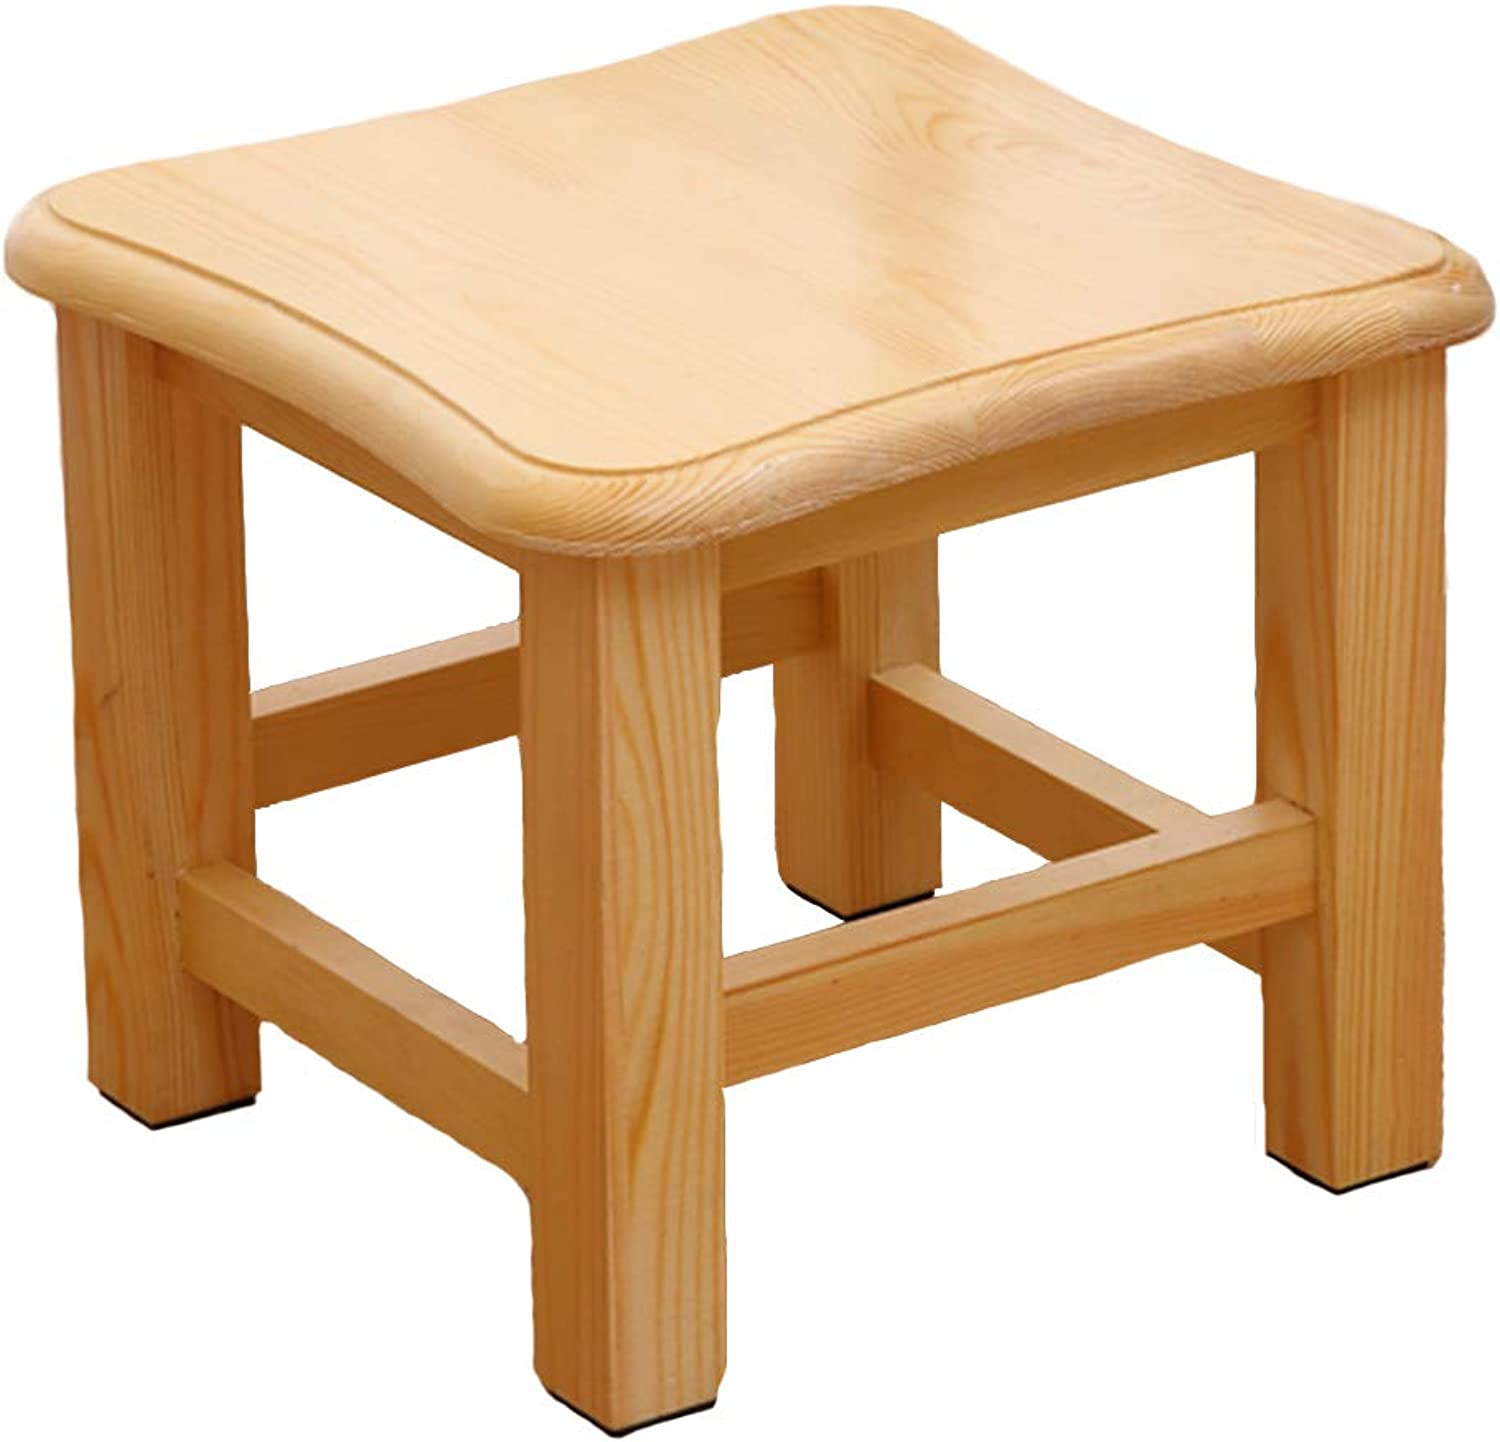 Solid Wood Stool Small Bench Change shoes Bench Living Room Coffee Table Stool Light and Strong (color   D)